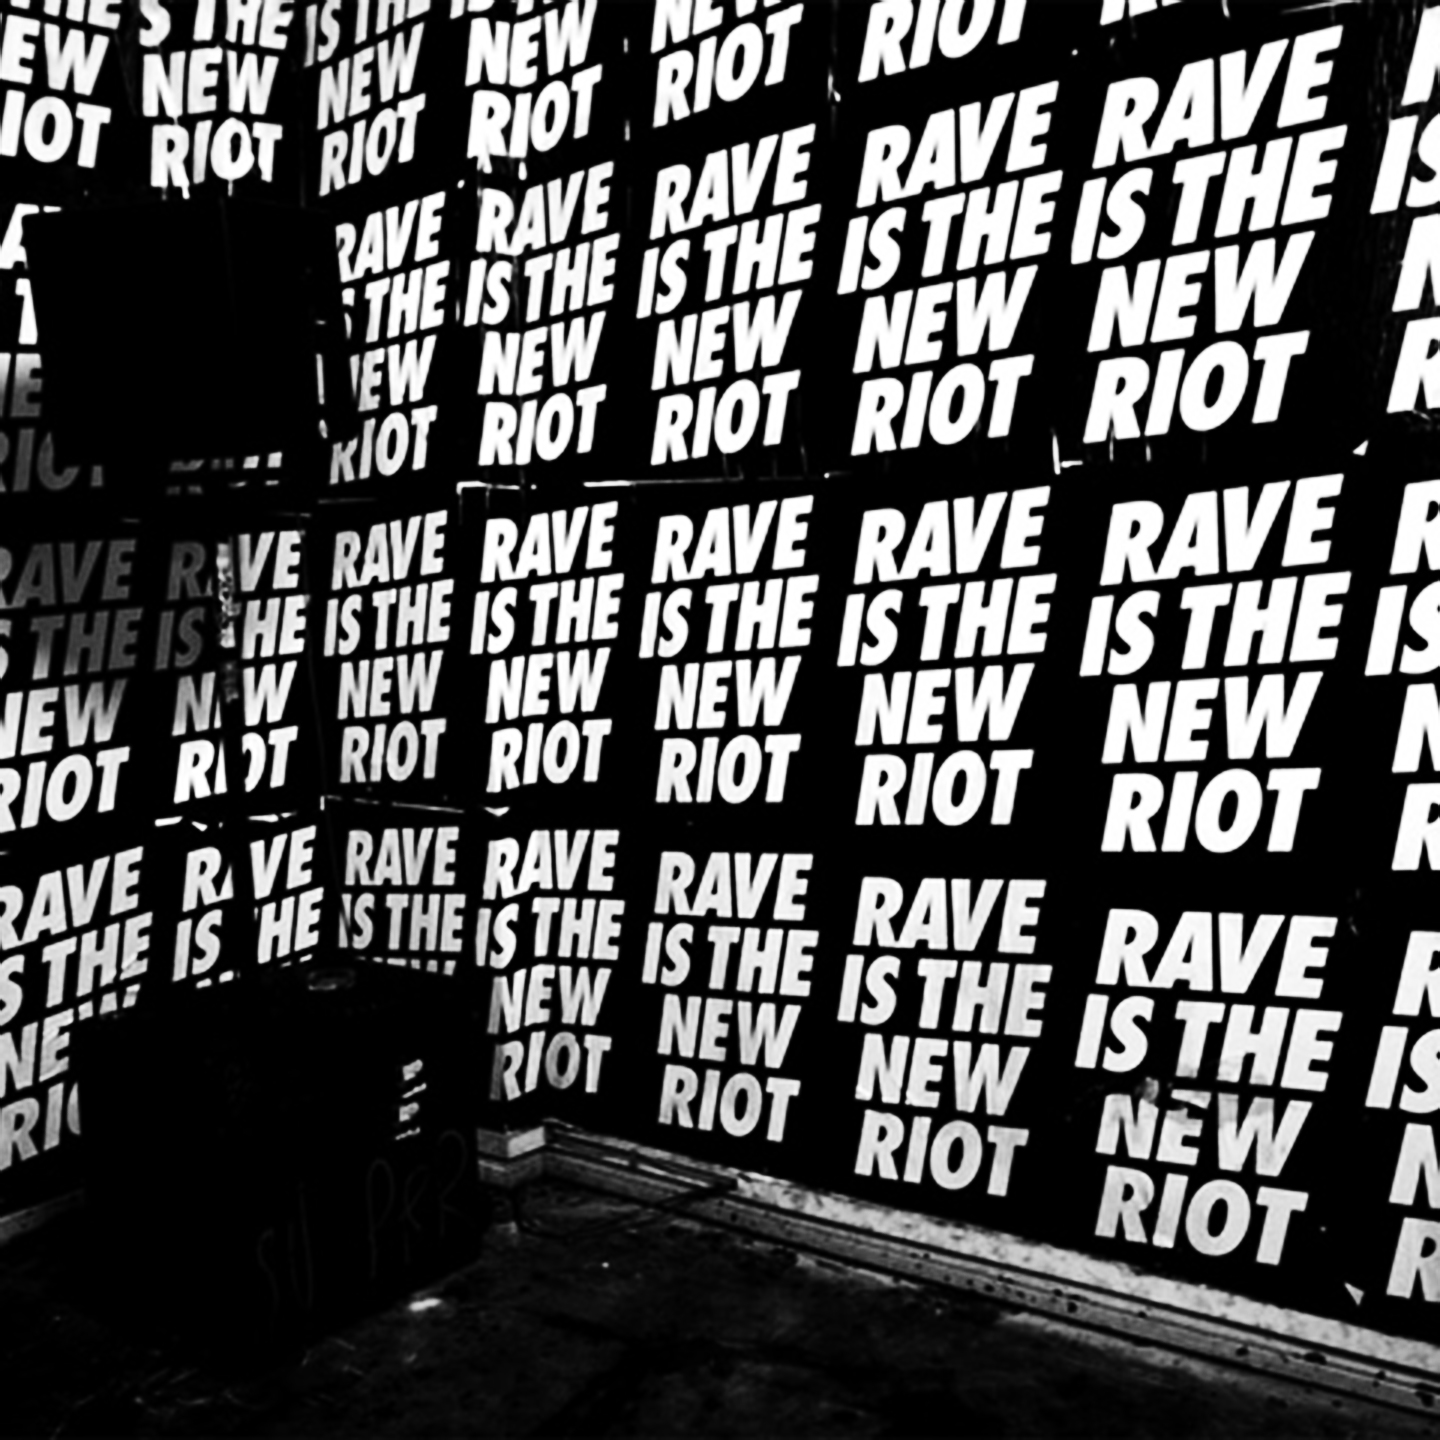 rave_is_the_new_riot1.jpg